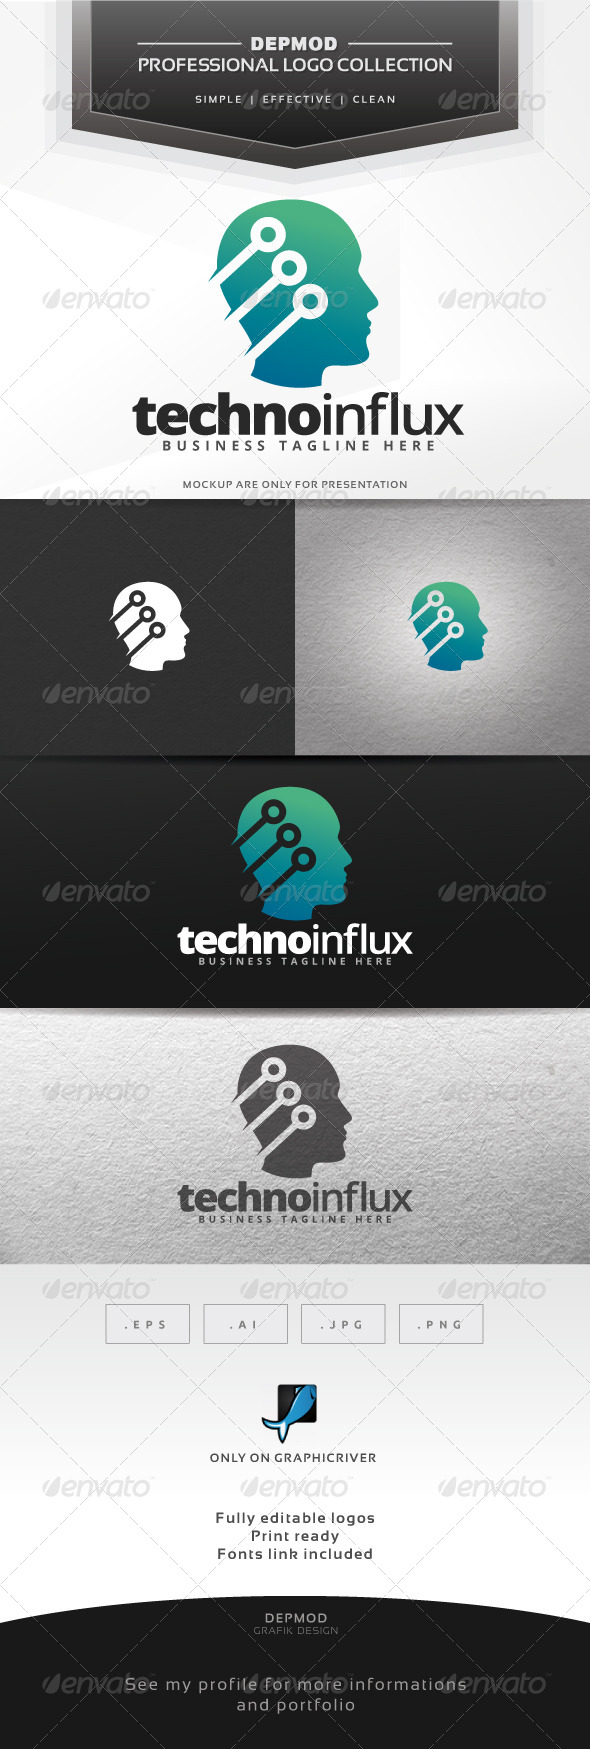 GraphicRiver Techno Influx Logo 7447245